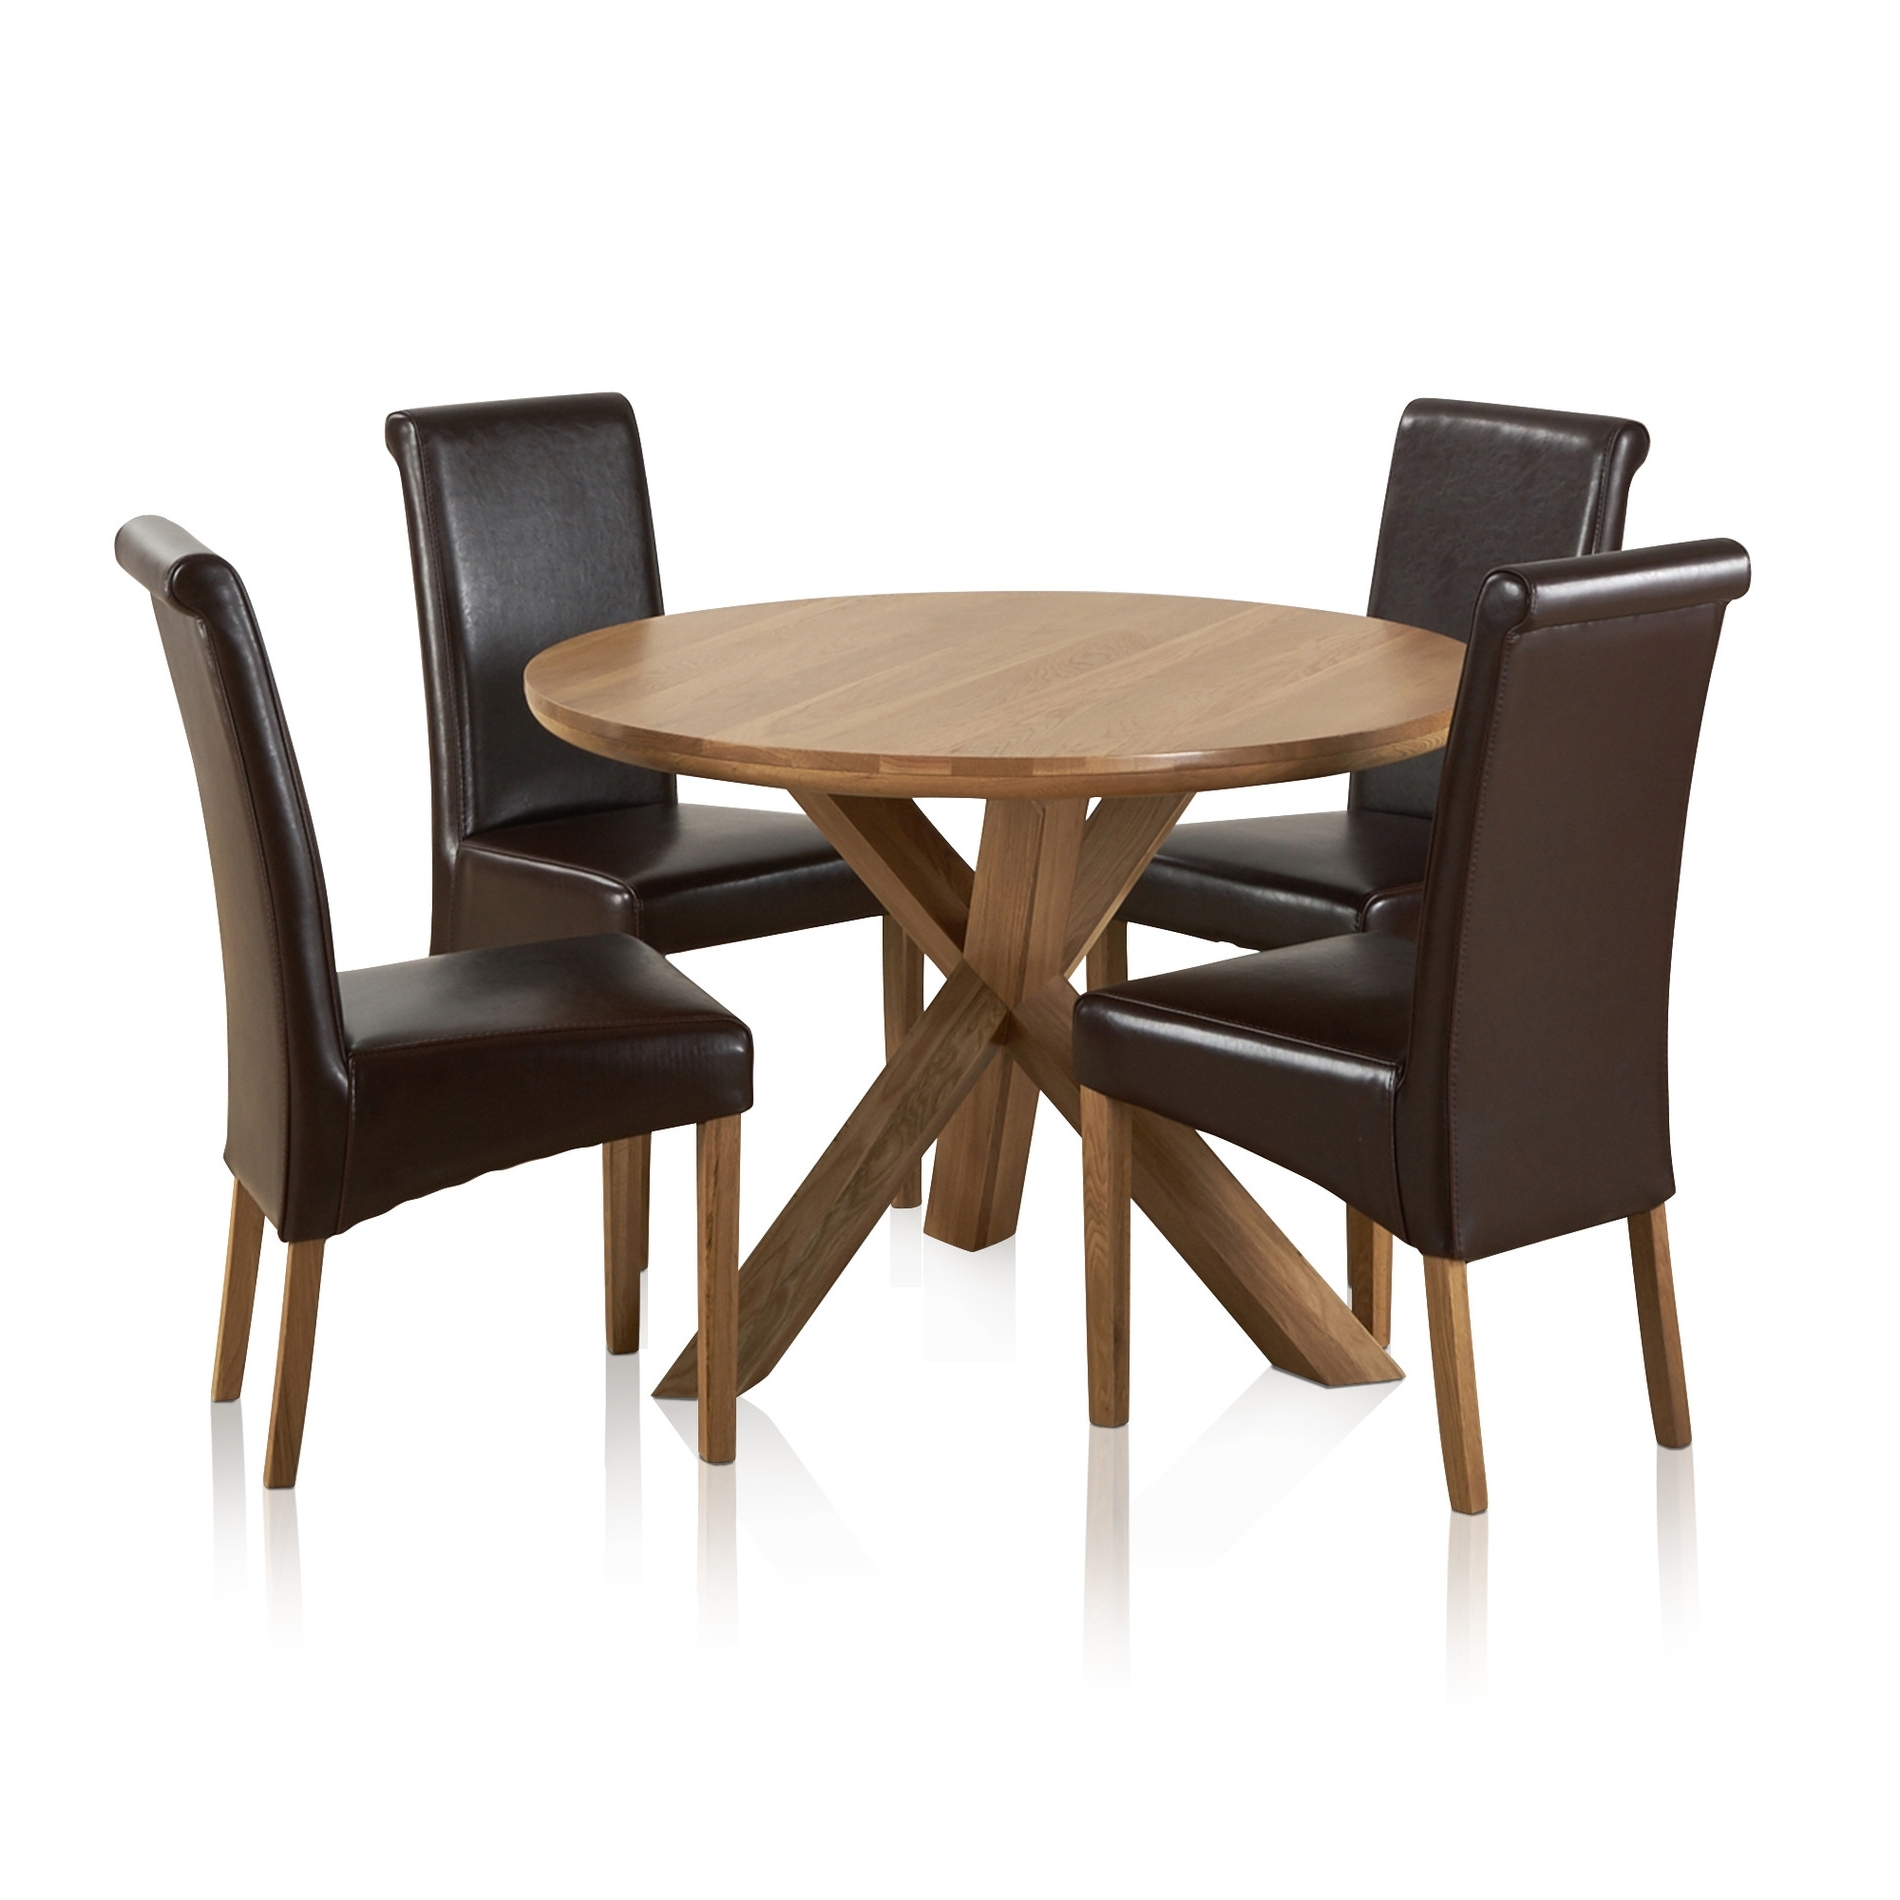 Round Oak Dining Tables And 4 Chairs With Regard To Best And Newest Natural Real Oak Dining Set: Round Table + 4 Brown Leather Chairs (View 6 of 25)